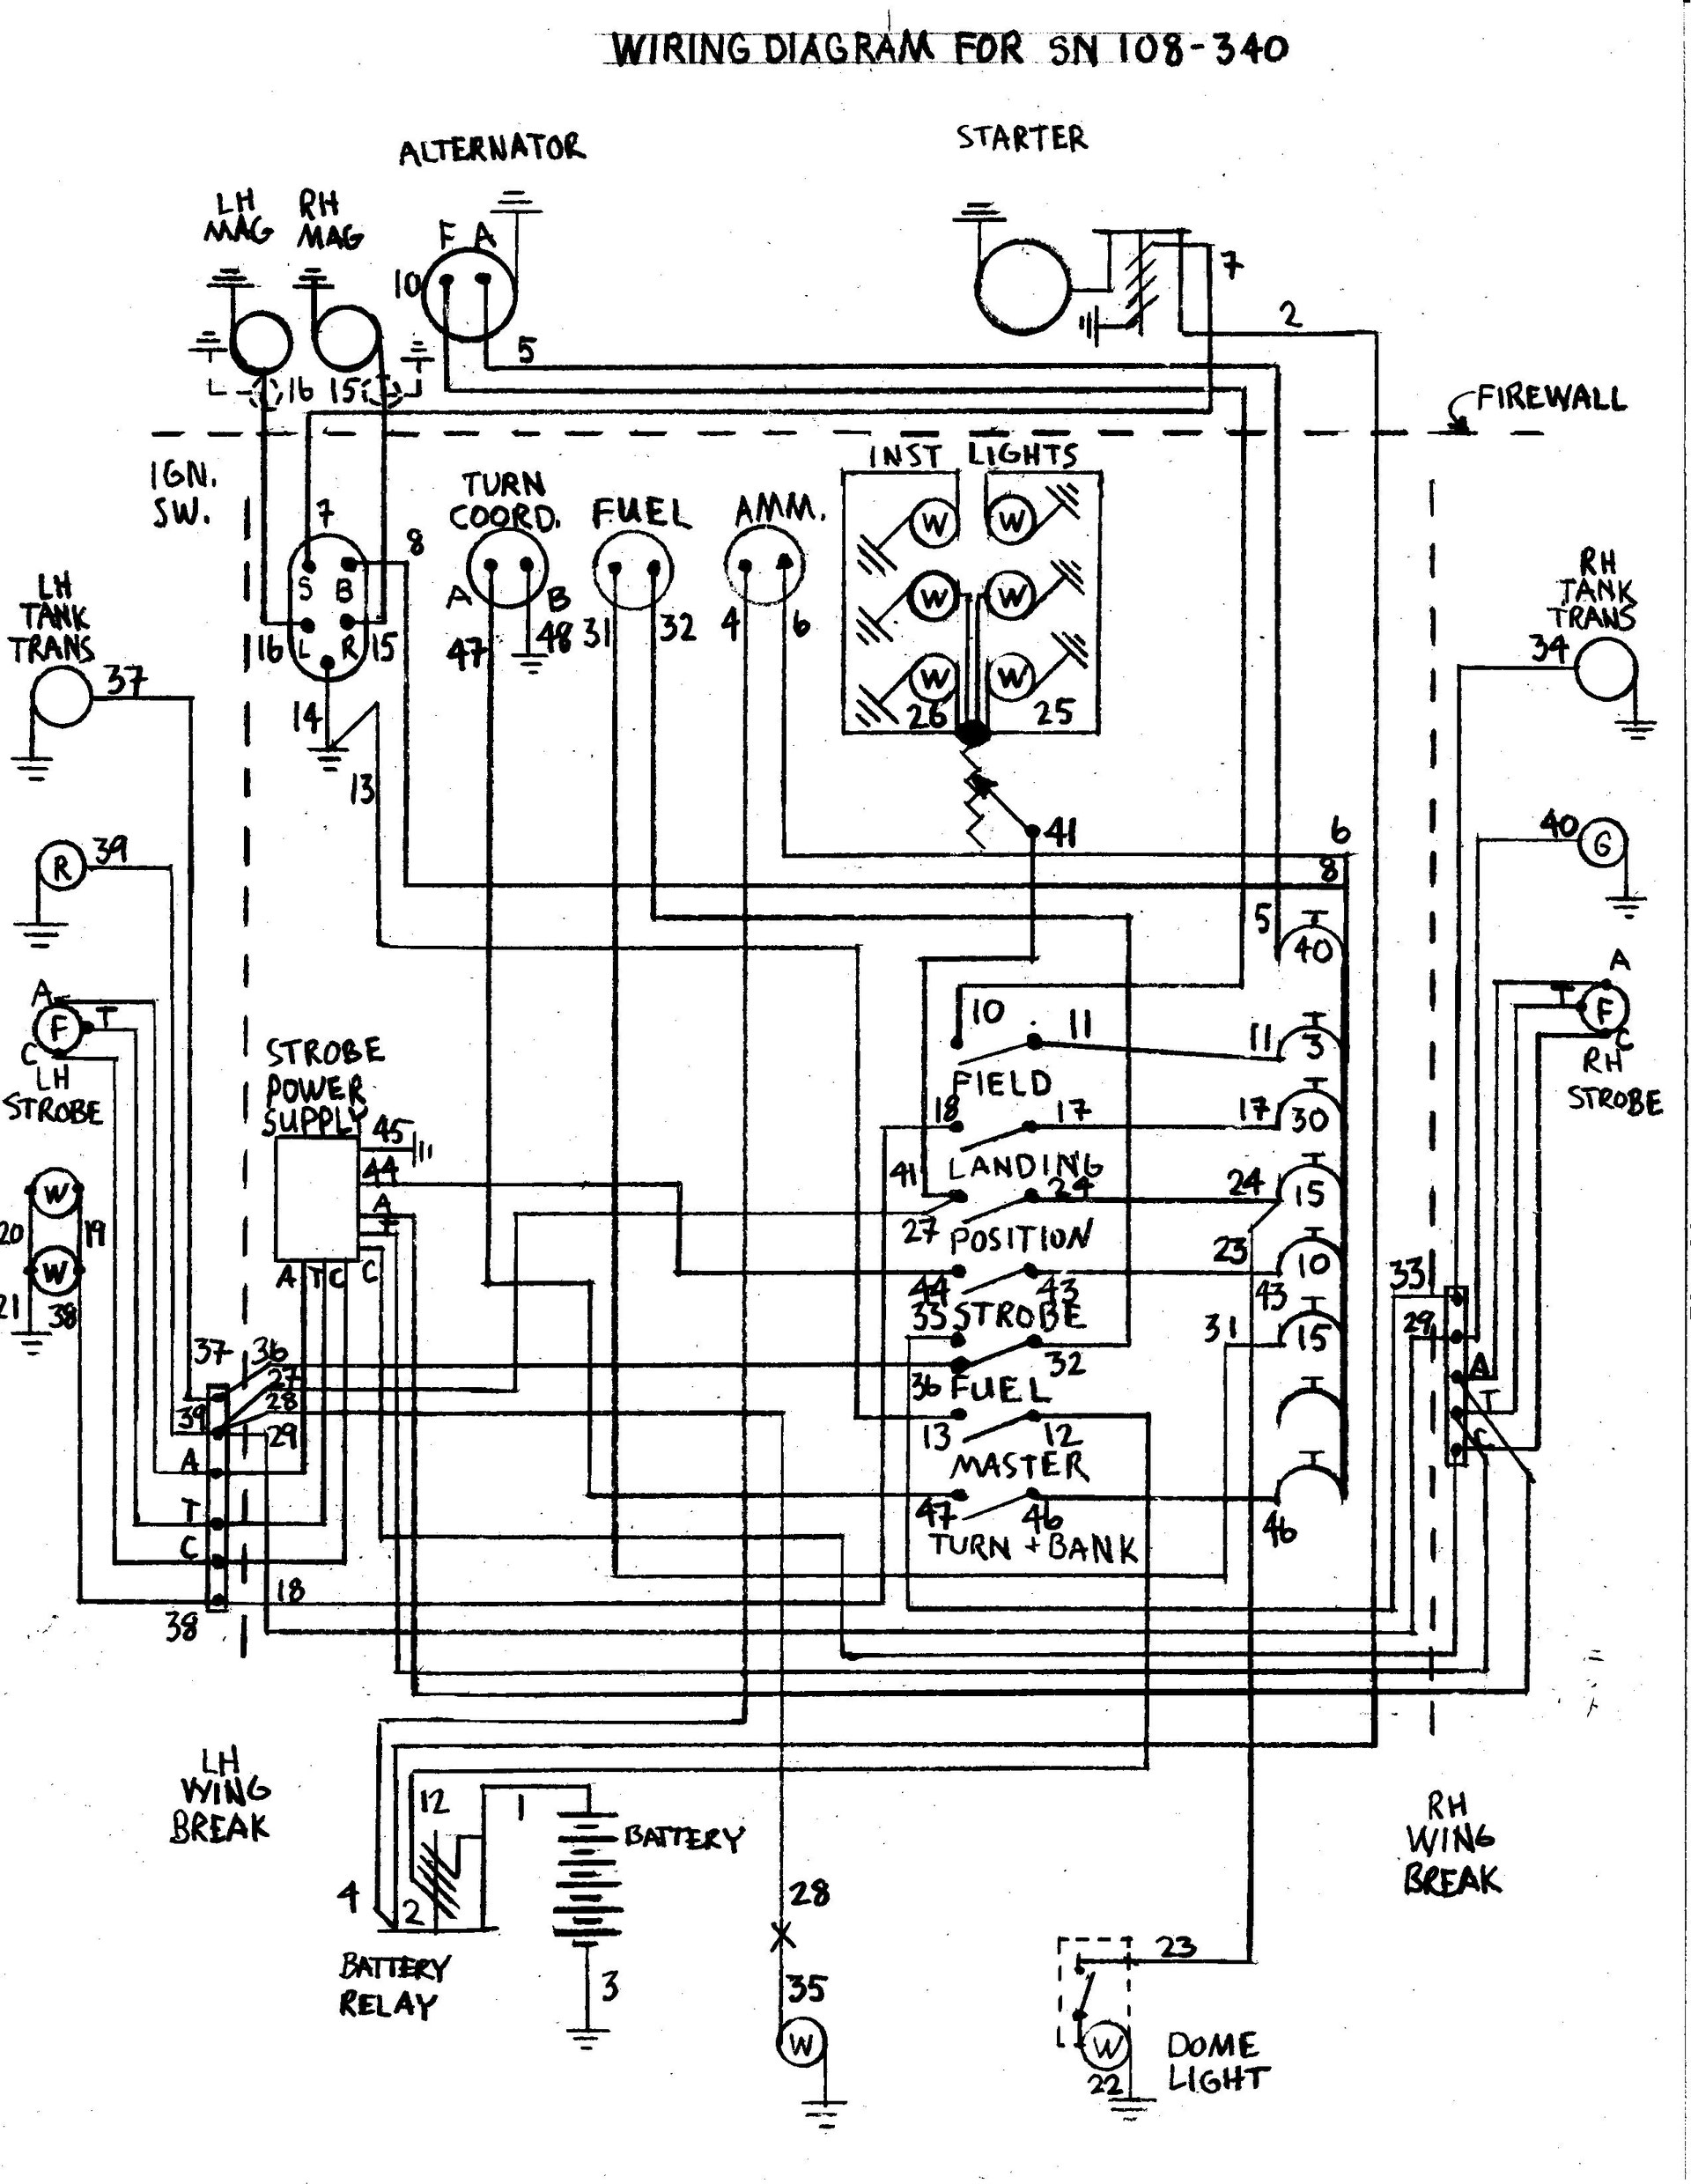 john deere 410g wiring diagram john deere service repair manuals wiring schematic diagrams  john deere service repair manuals